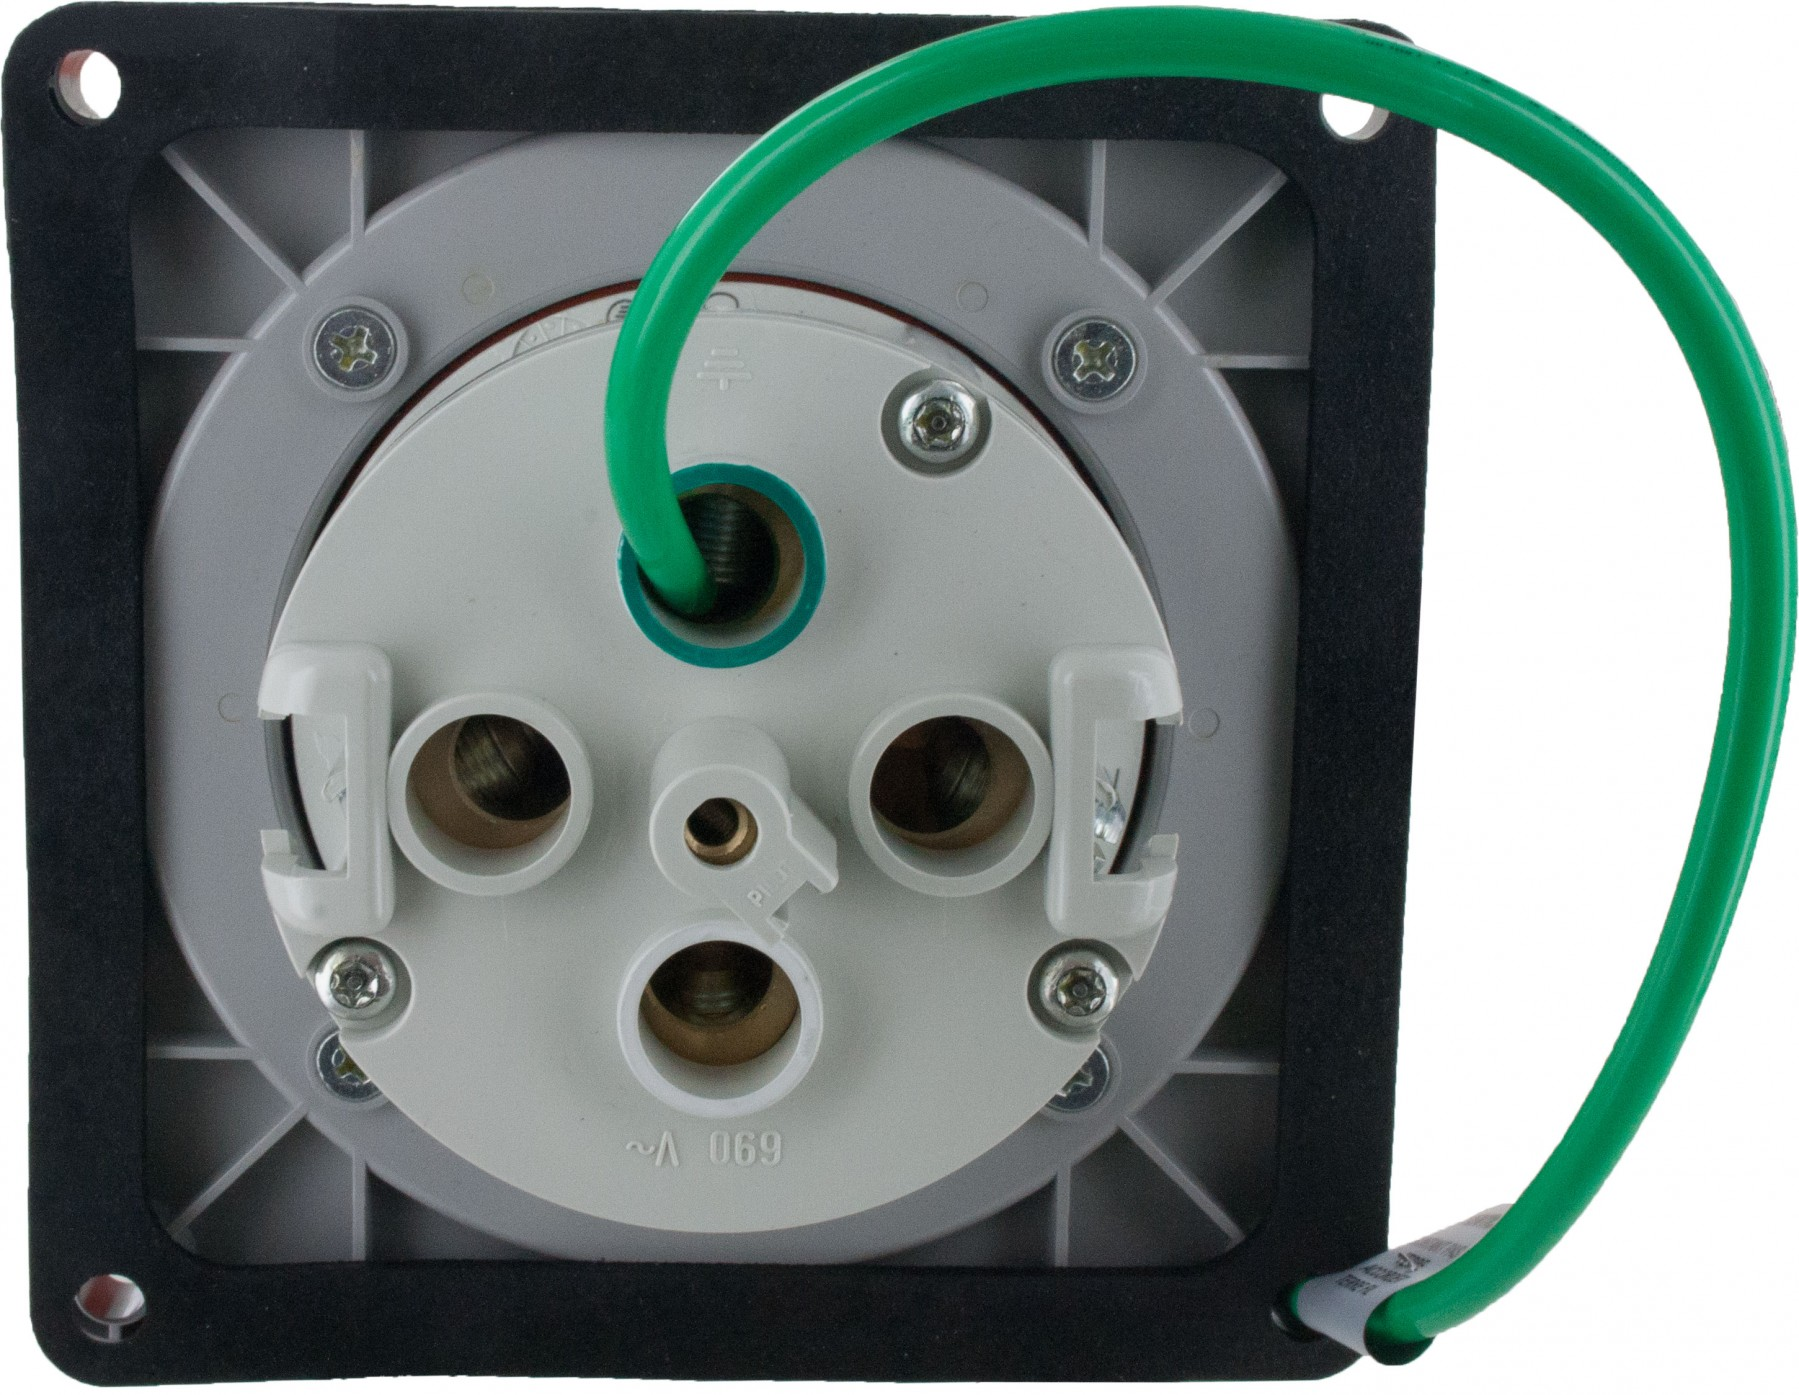 4100r12w Pin And Sleeve Receptacle 100 Amp 3 Pole 4 Wire Elecdirect Wiring Receptacles More Views